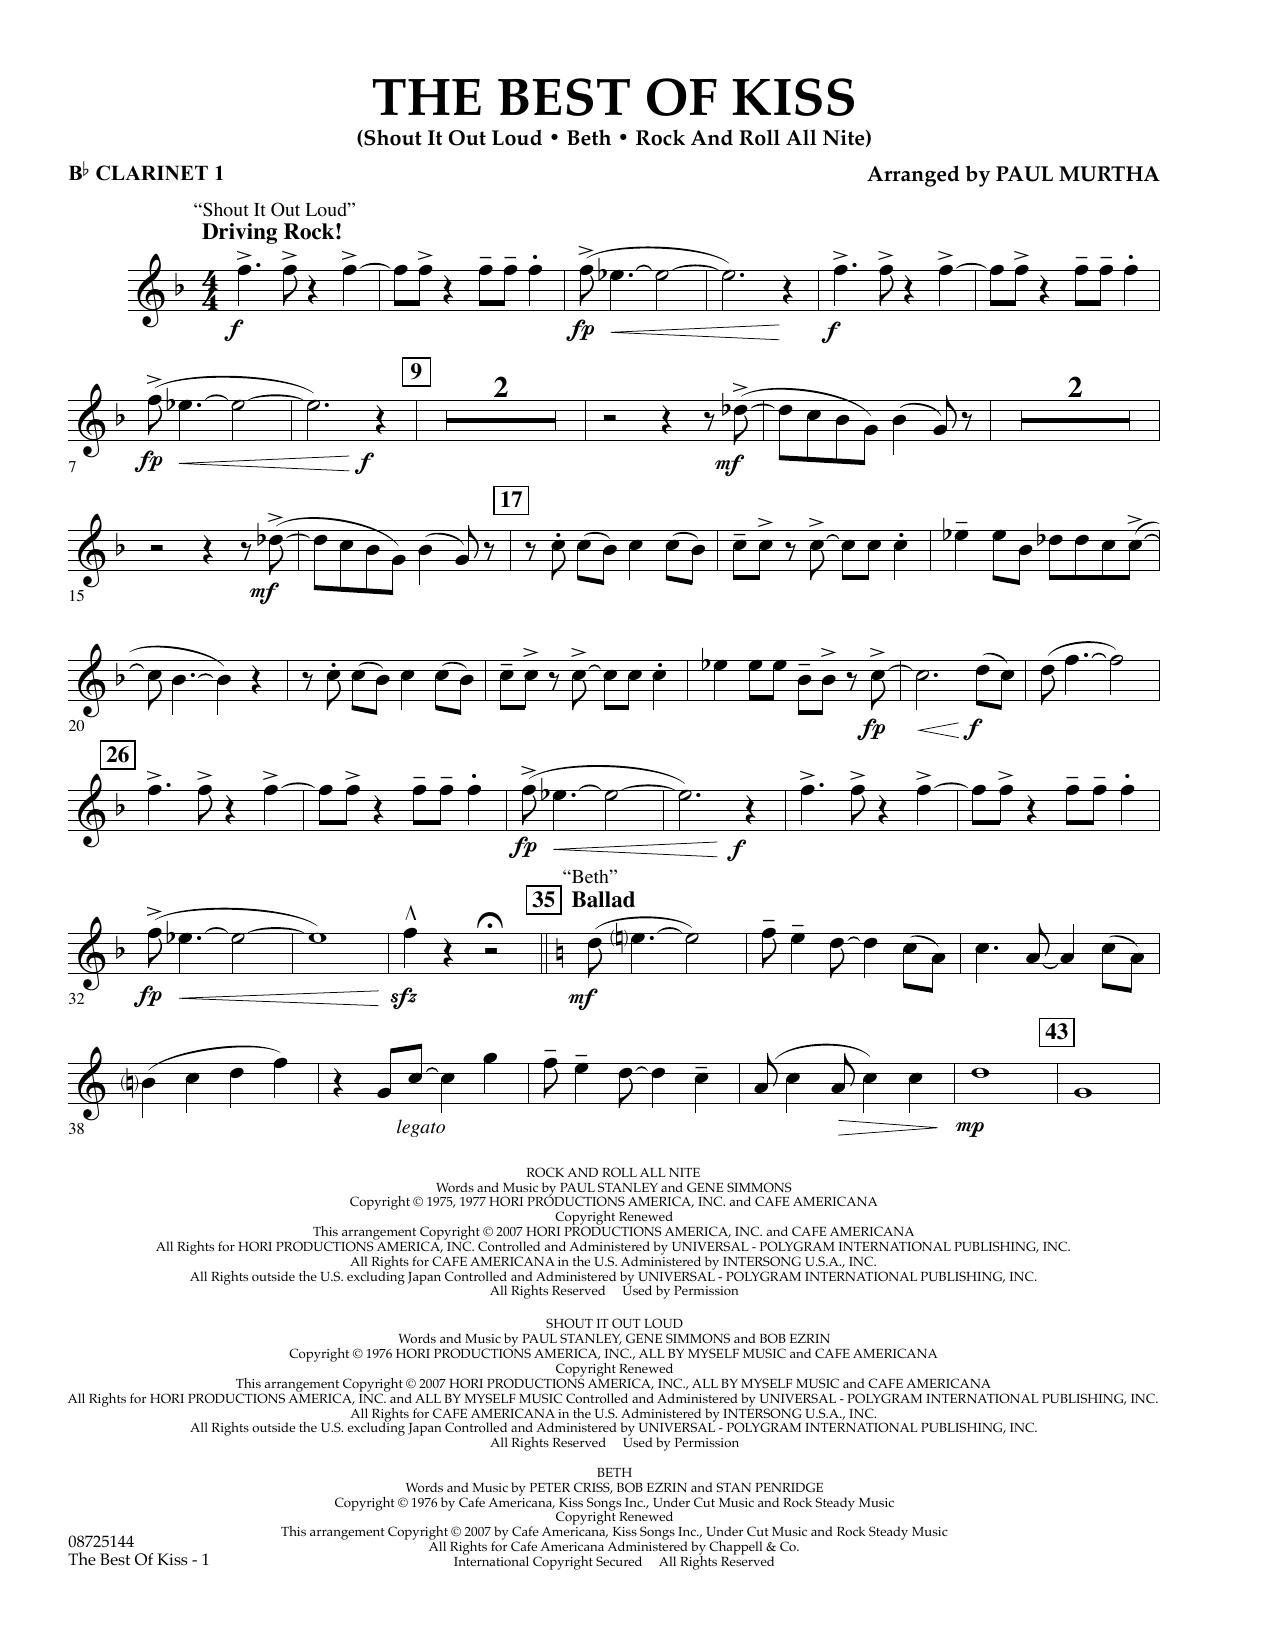 Paul Murtha The Best of Kiss - Bb Clarinet 1 sheet music preview music notes and score for Concert Band including 2 page(s)